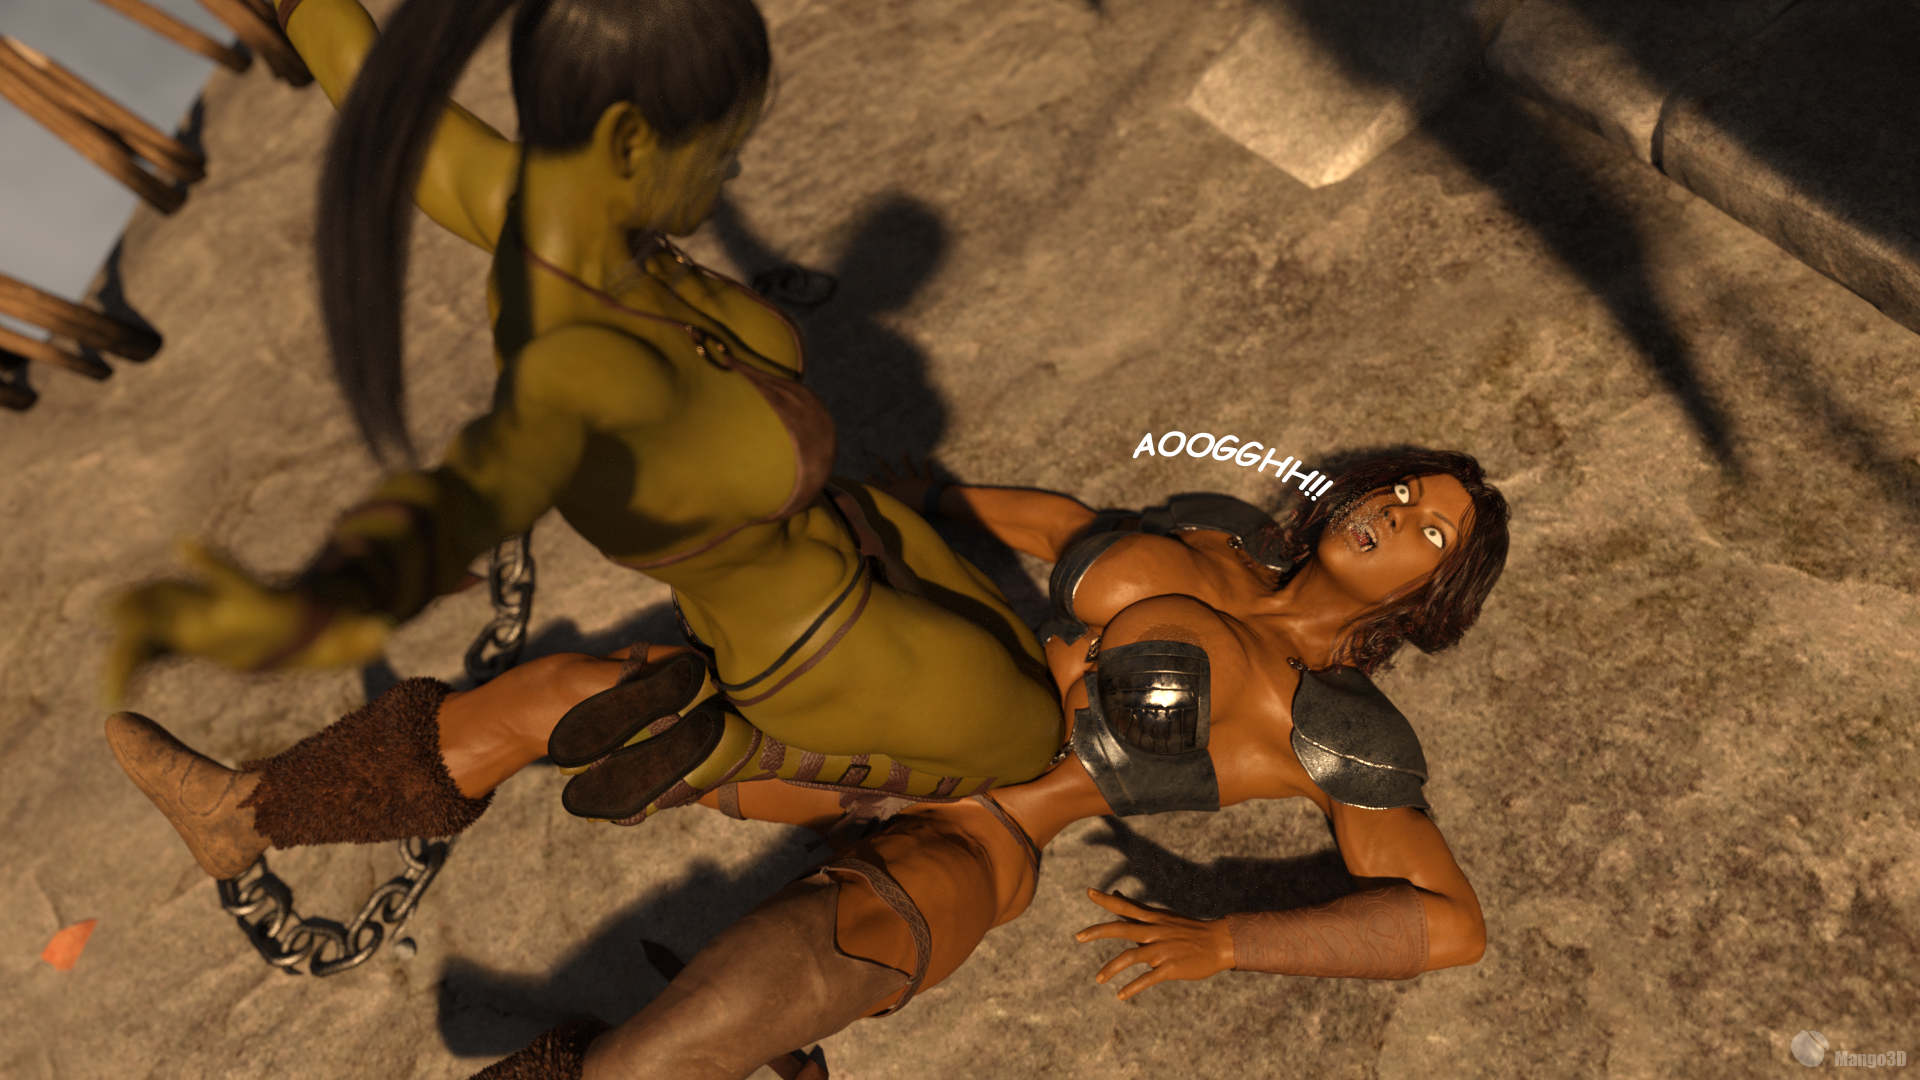 Orc and musclegirl - 1 part 2